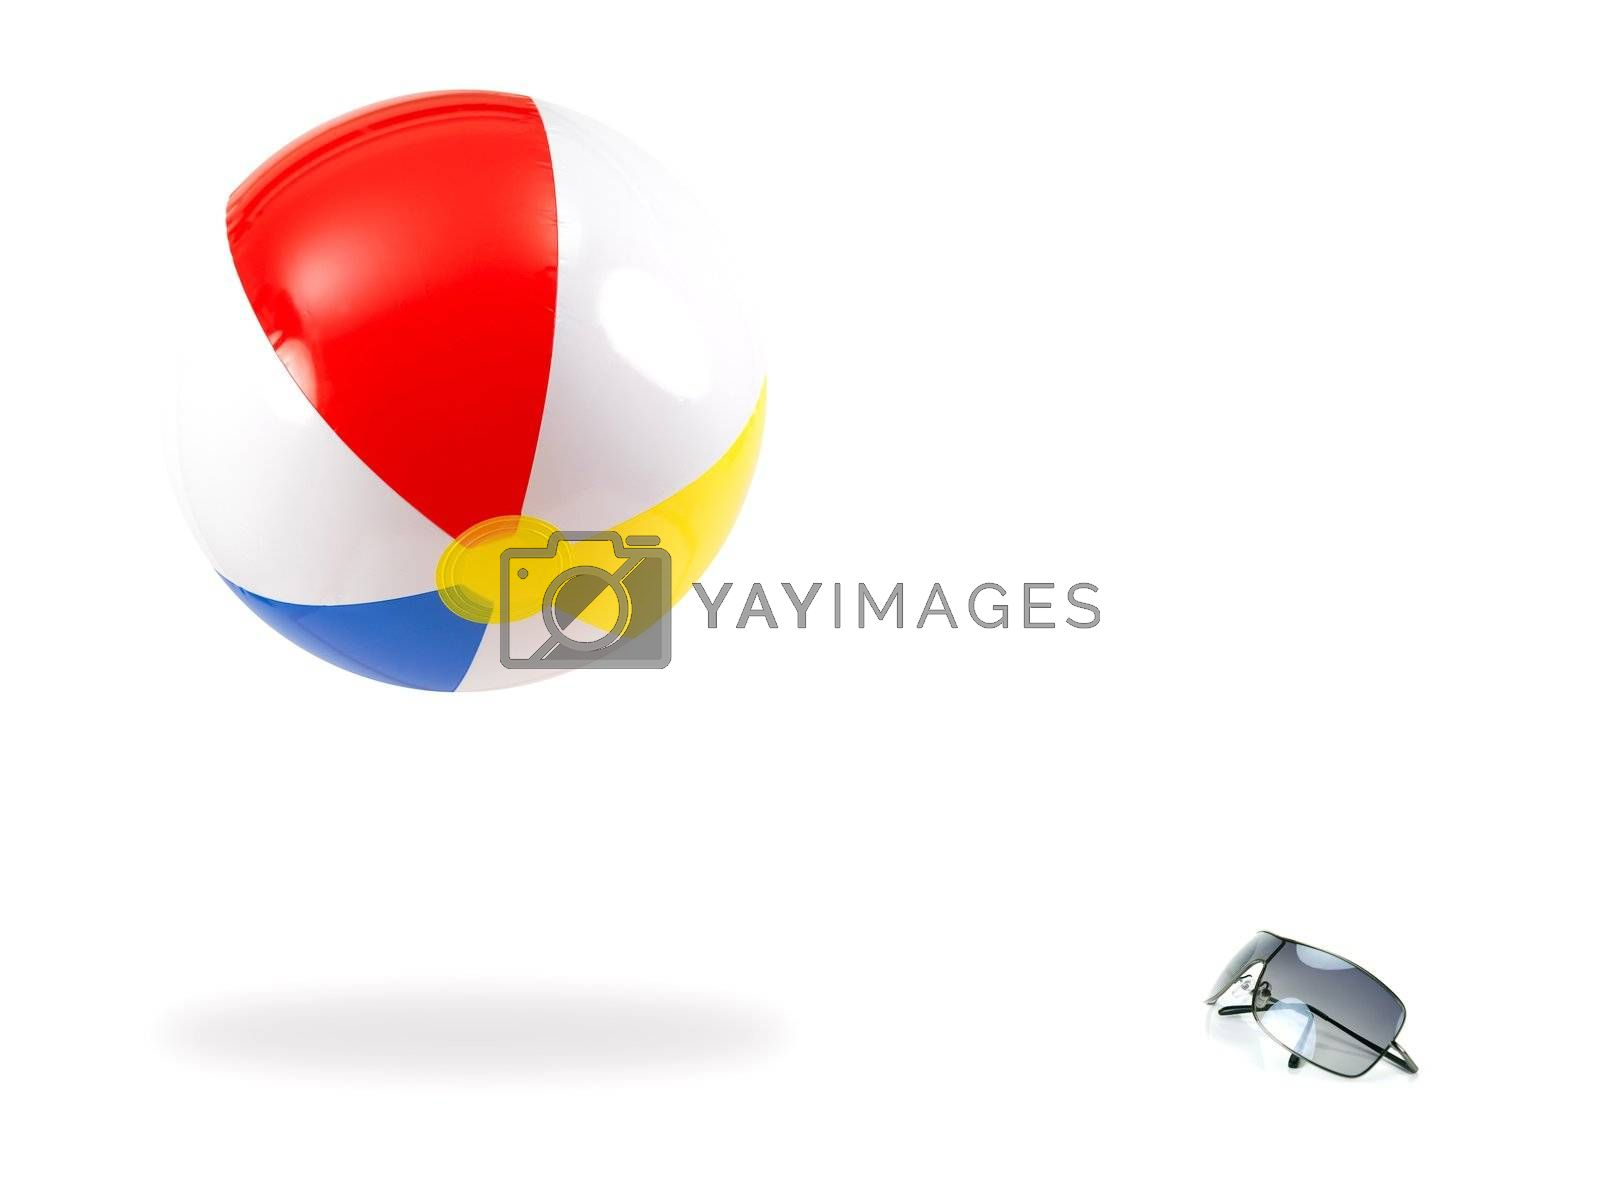 Sunglasses and a beach ball isolated against a white background